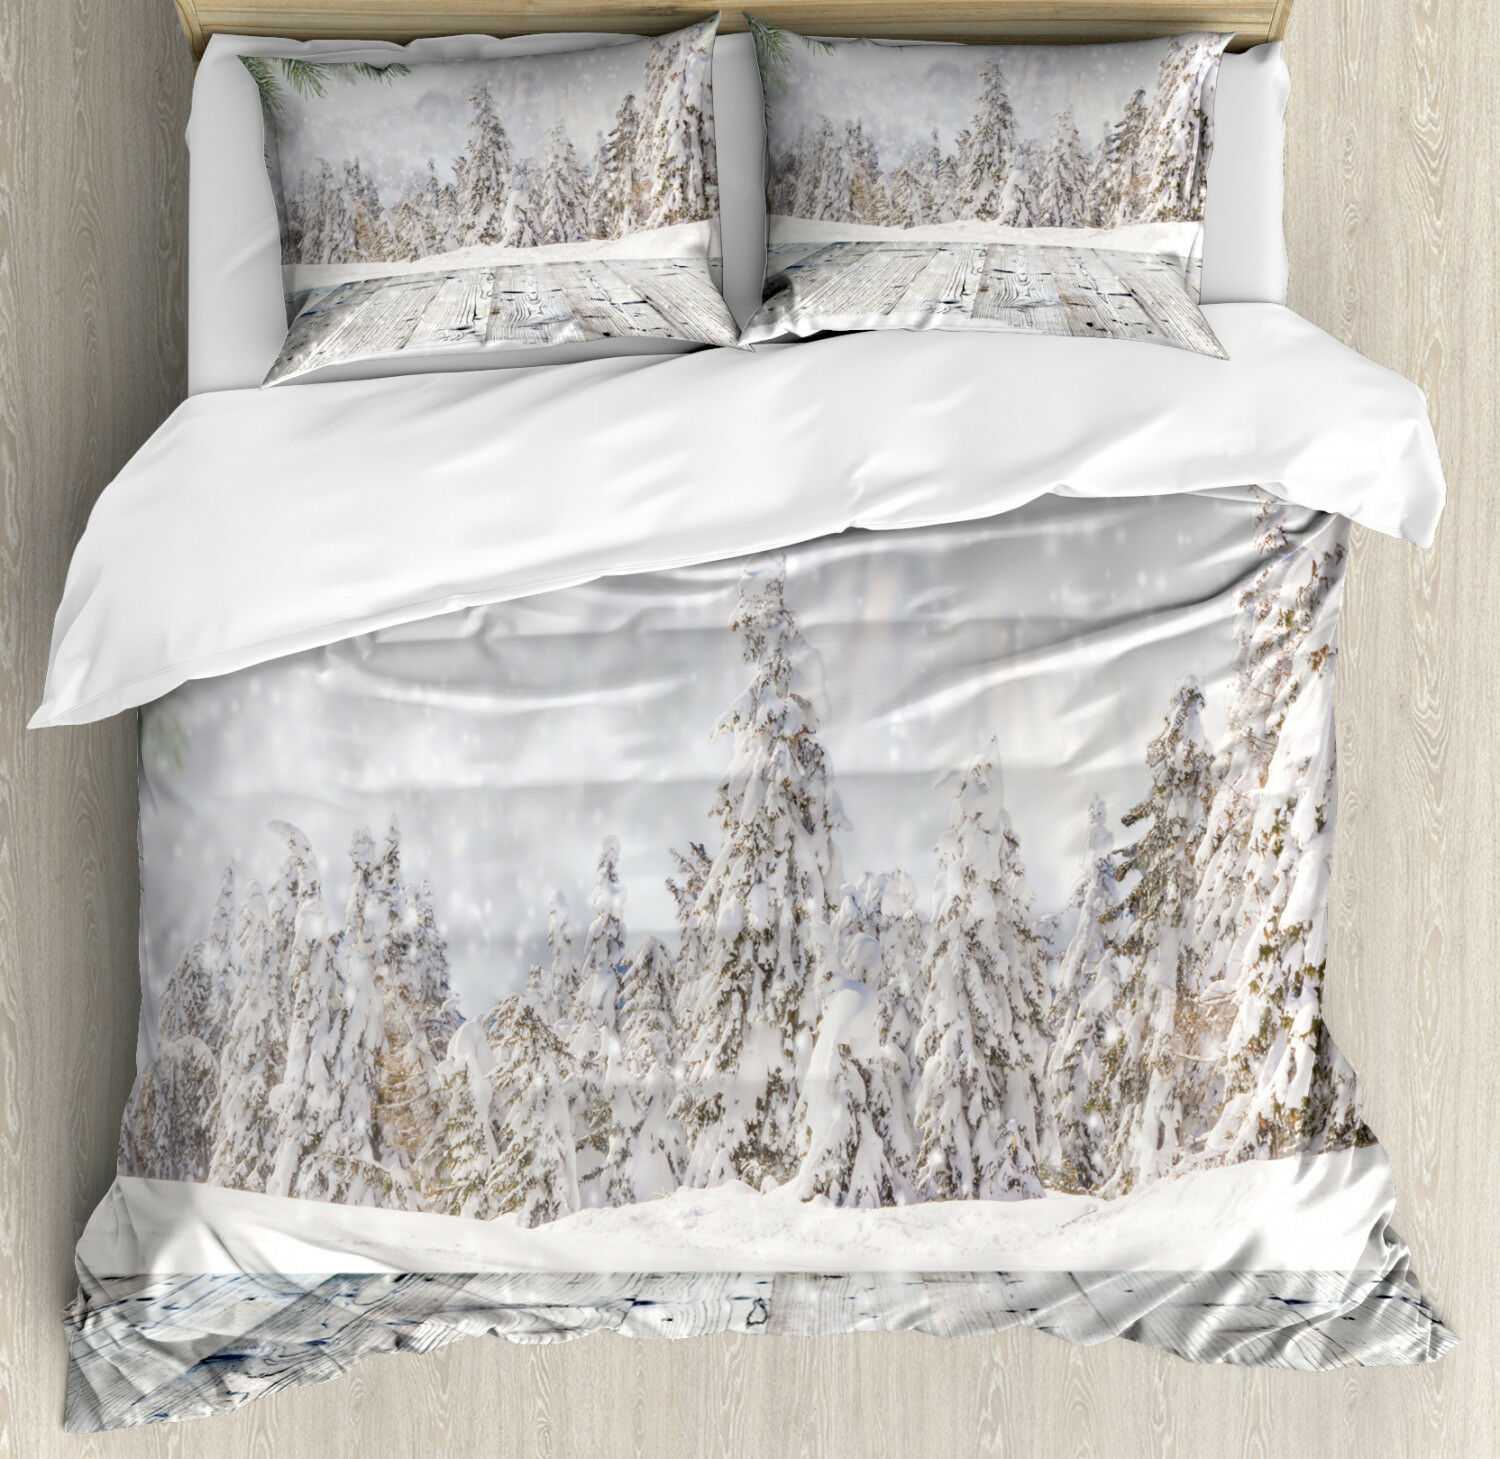 Winter Duvet Cover Set with Pillow Shams Wooden Surface Image Print